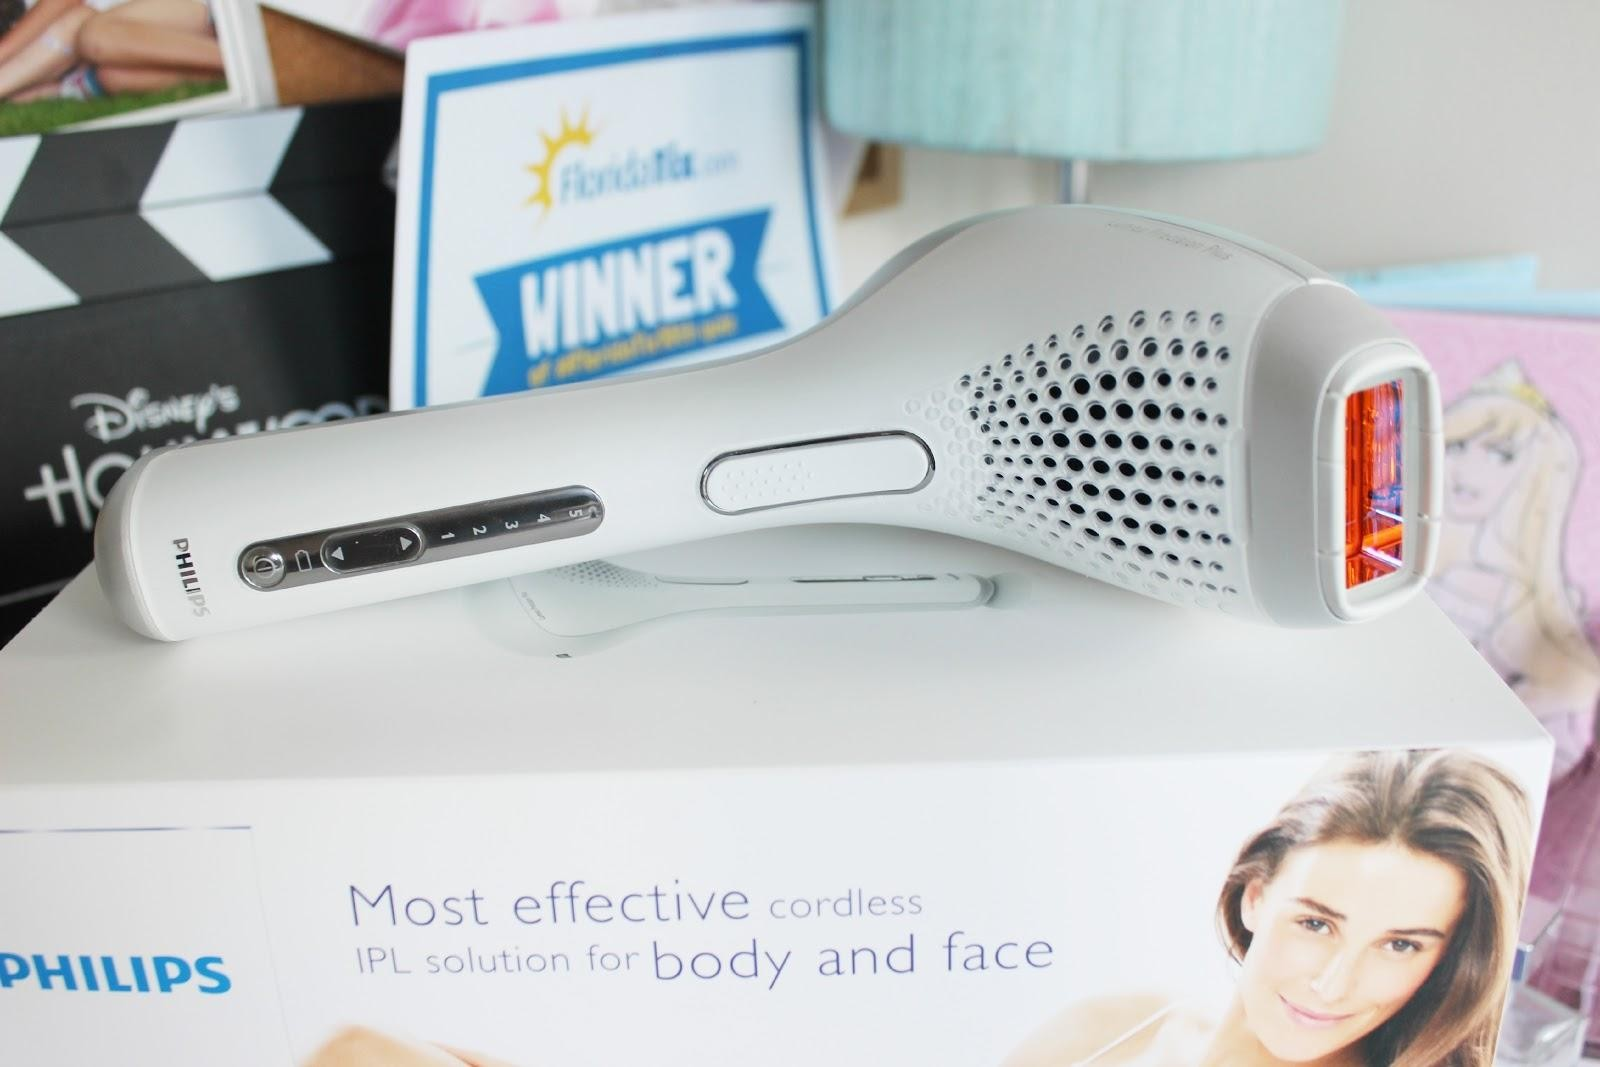 A picture of the Philips Lumea Precision Plan IPL Hair Removal System